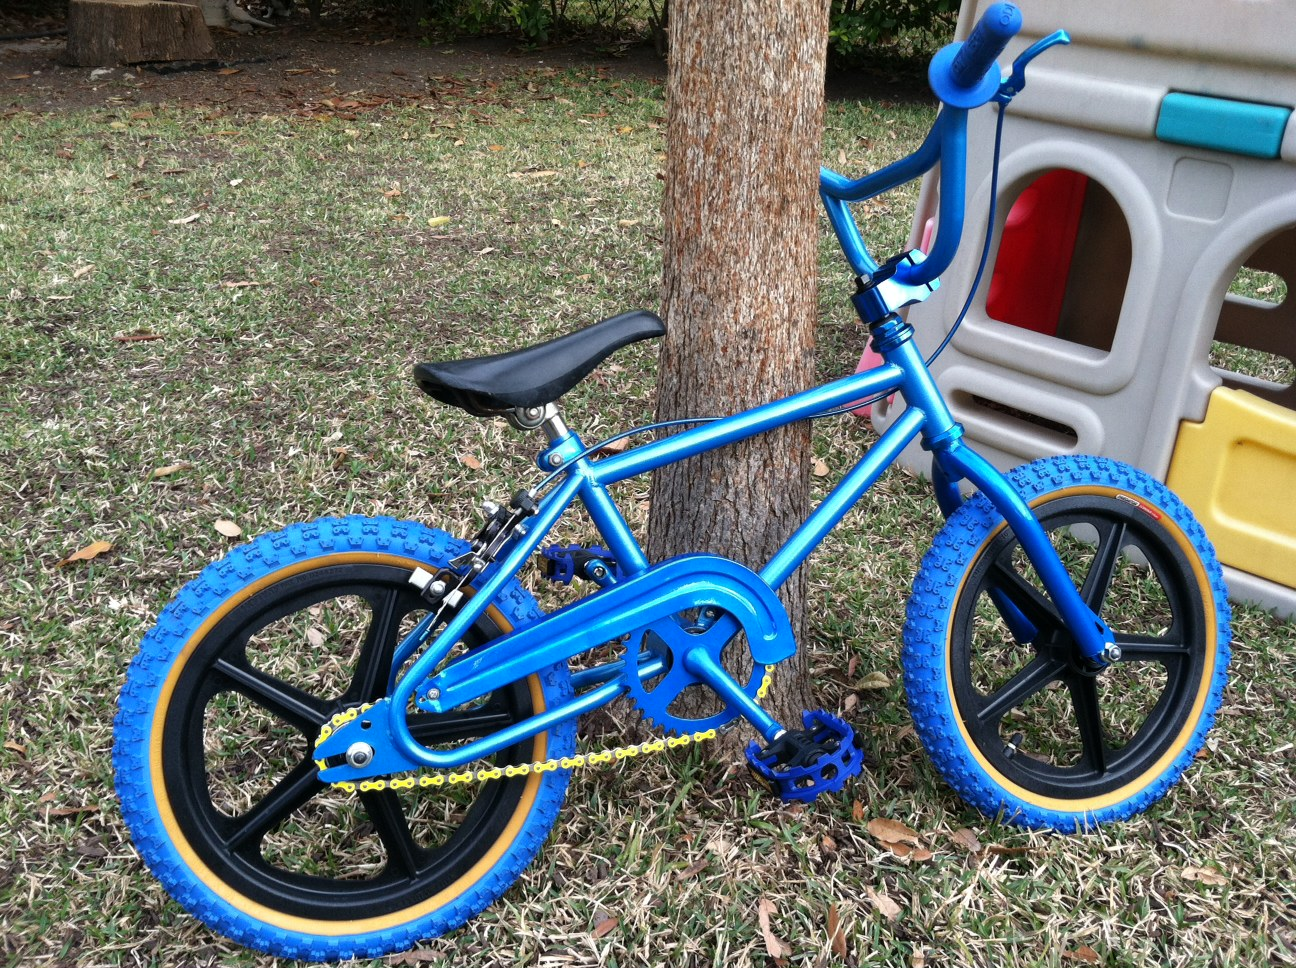 Miniviperblue on 10 Inch Mini Bike S